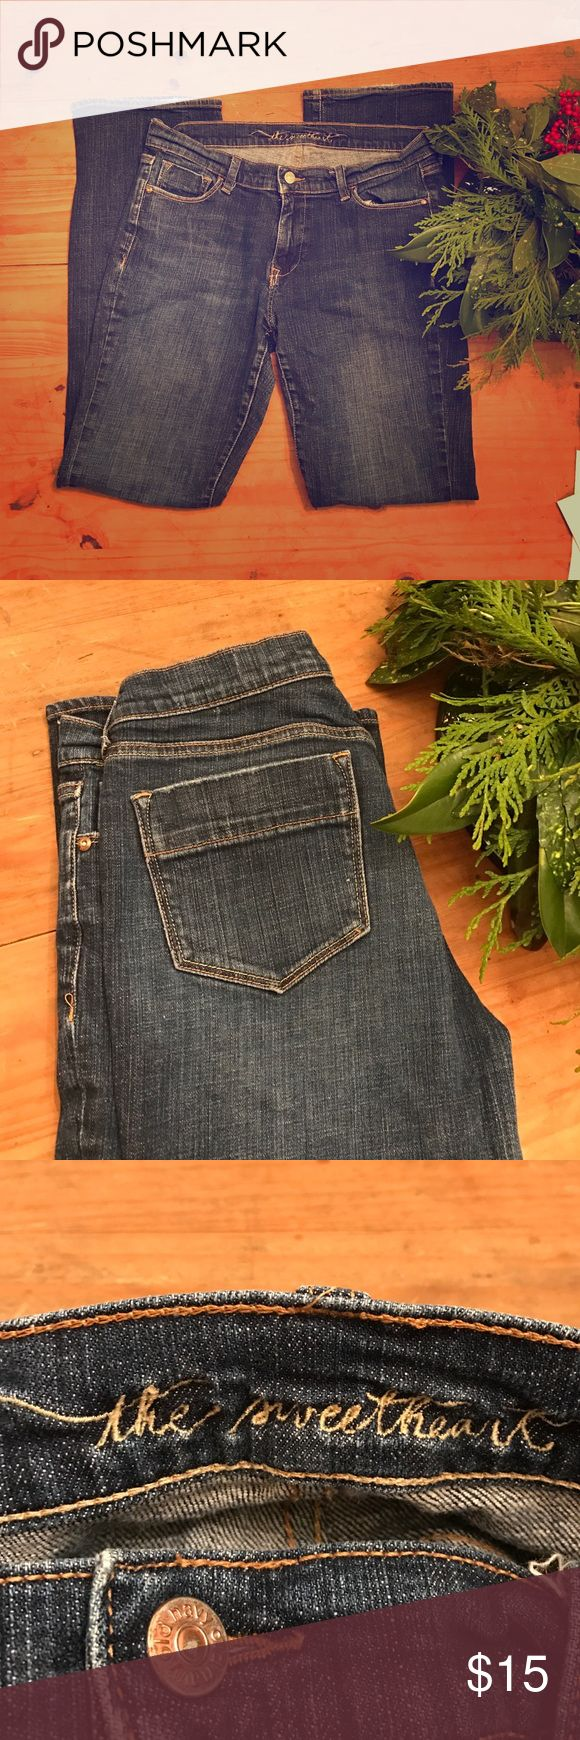 """Old Navy """"the sweetheart"""" jeans. Old Navy """"the sweetheart"""" jeans. Size 10 long. Classic-rise, boot-cut, stretch. 99% cotton, 1% spandex. Great condition. A tiny bit of jean ware on back-side of the bottom of pant. (Shown in first picture). Old Navy Jeans Boot Cut"""